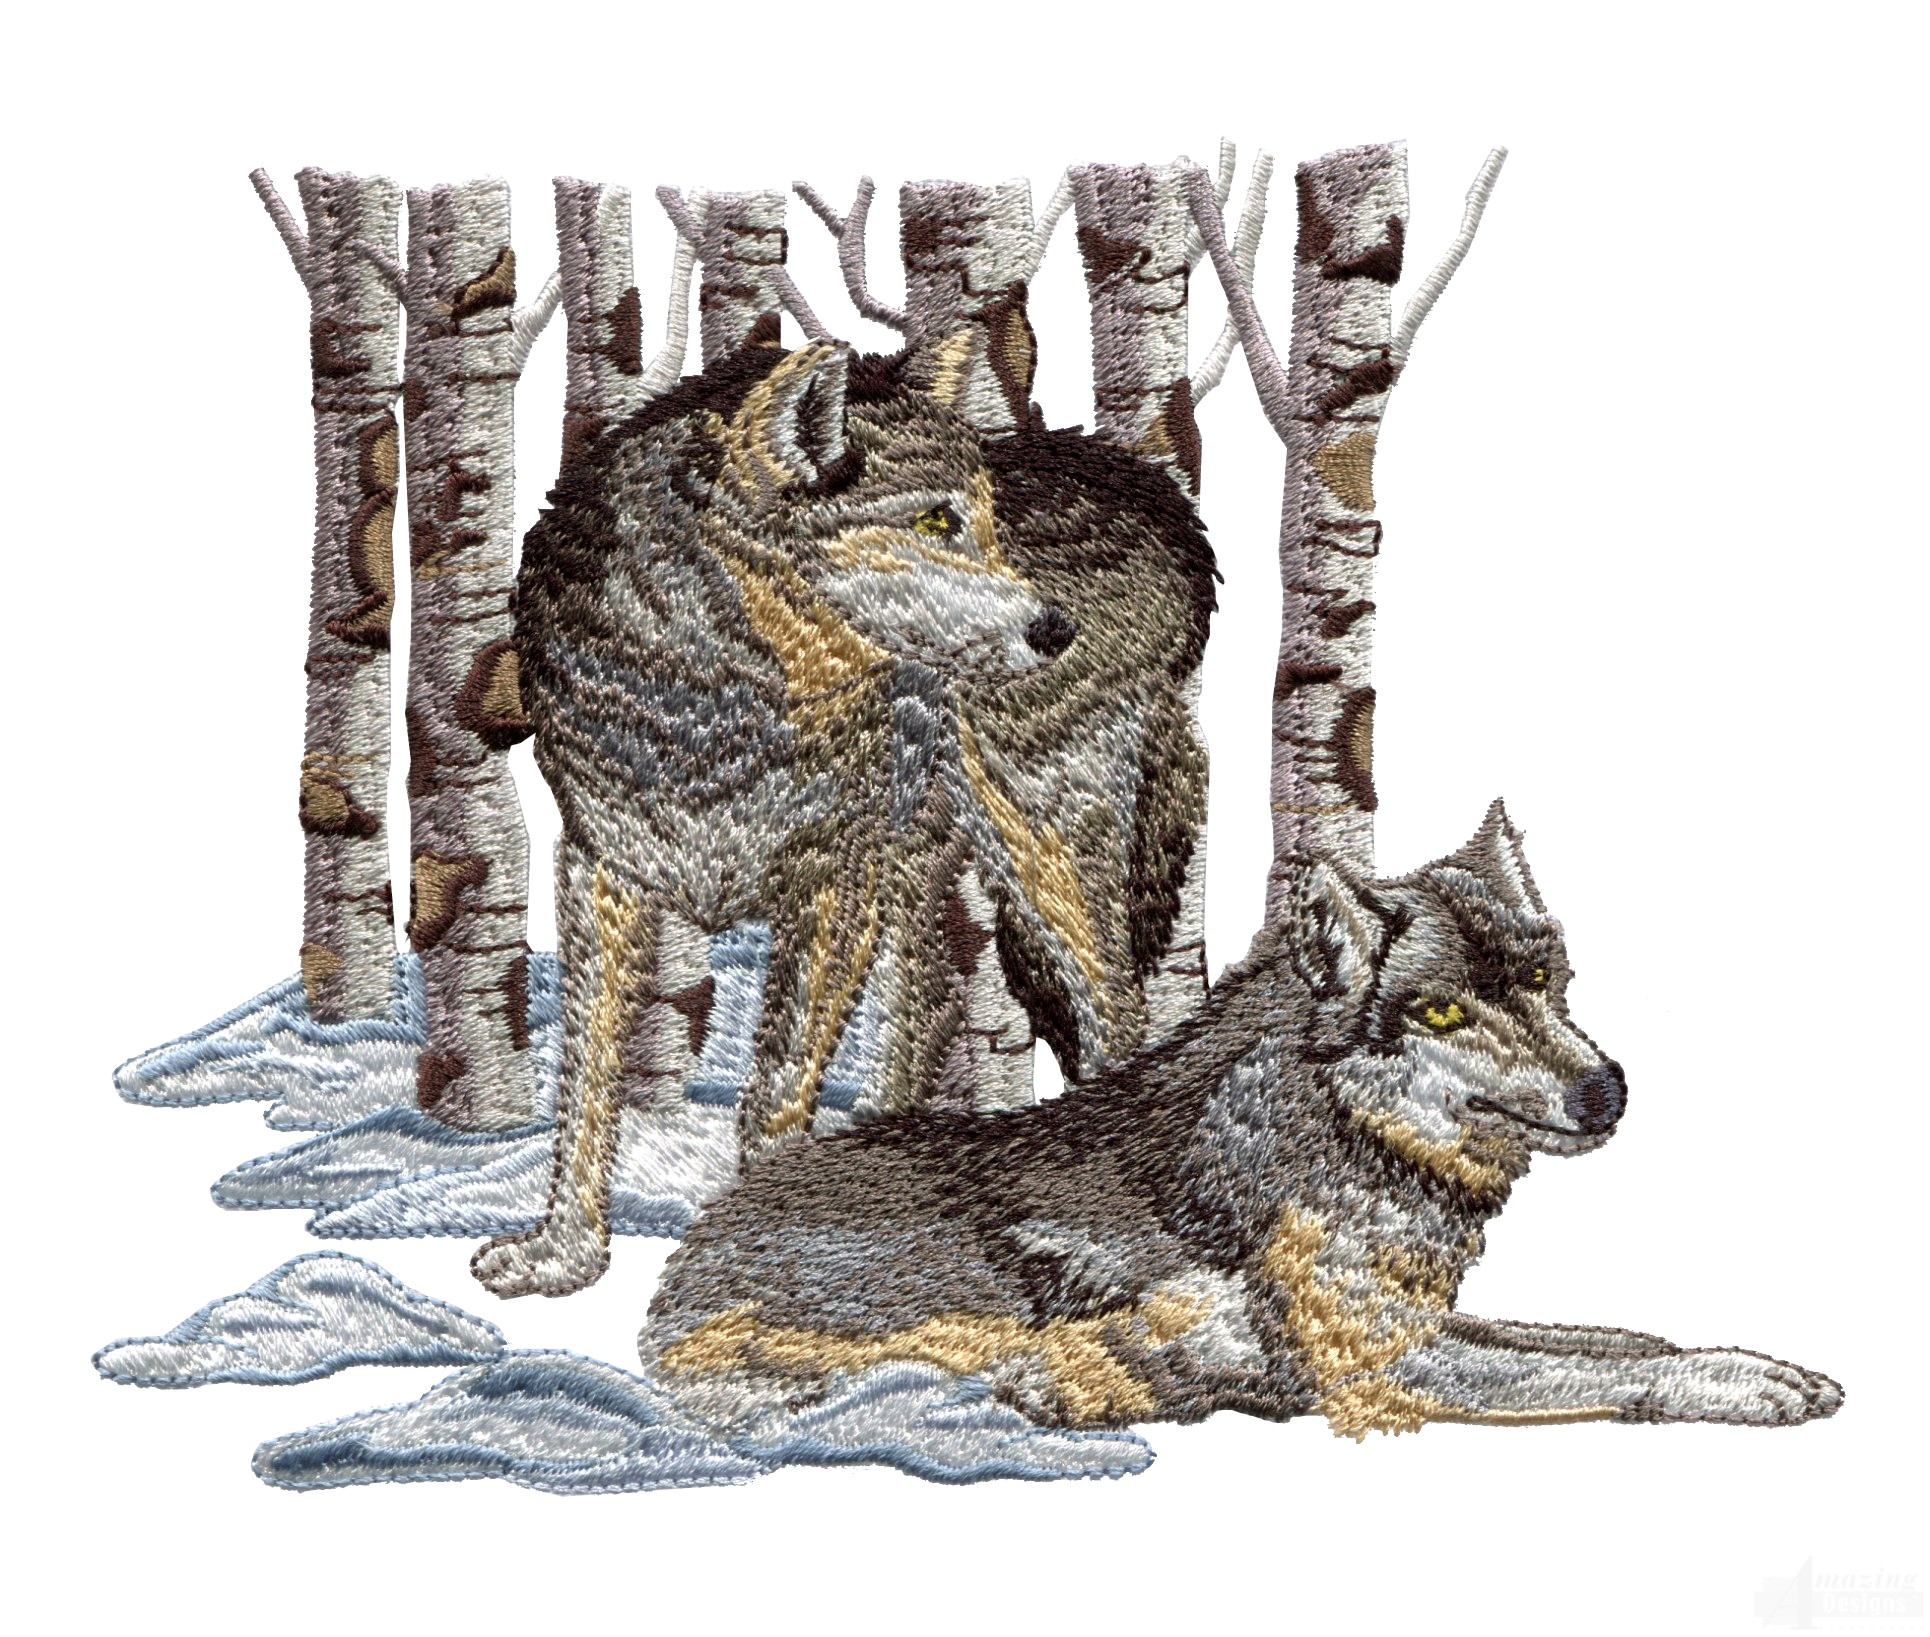 Swnmw128 Wolf Embroidery Design